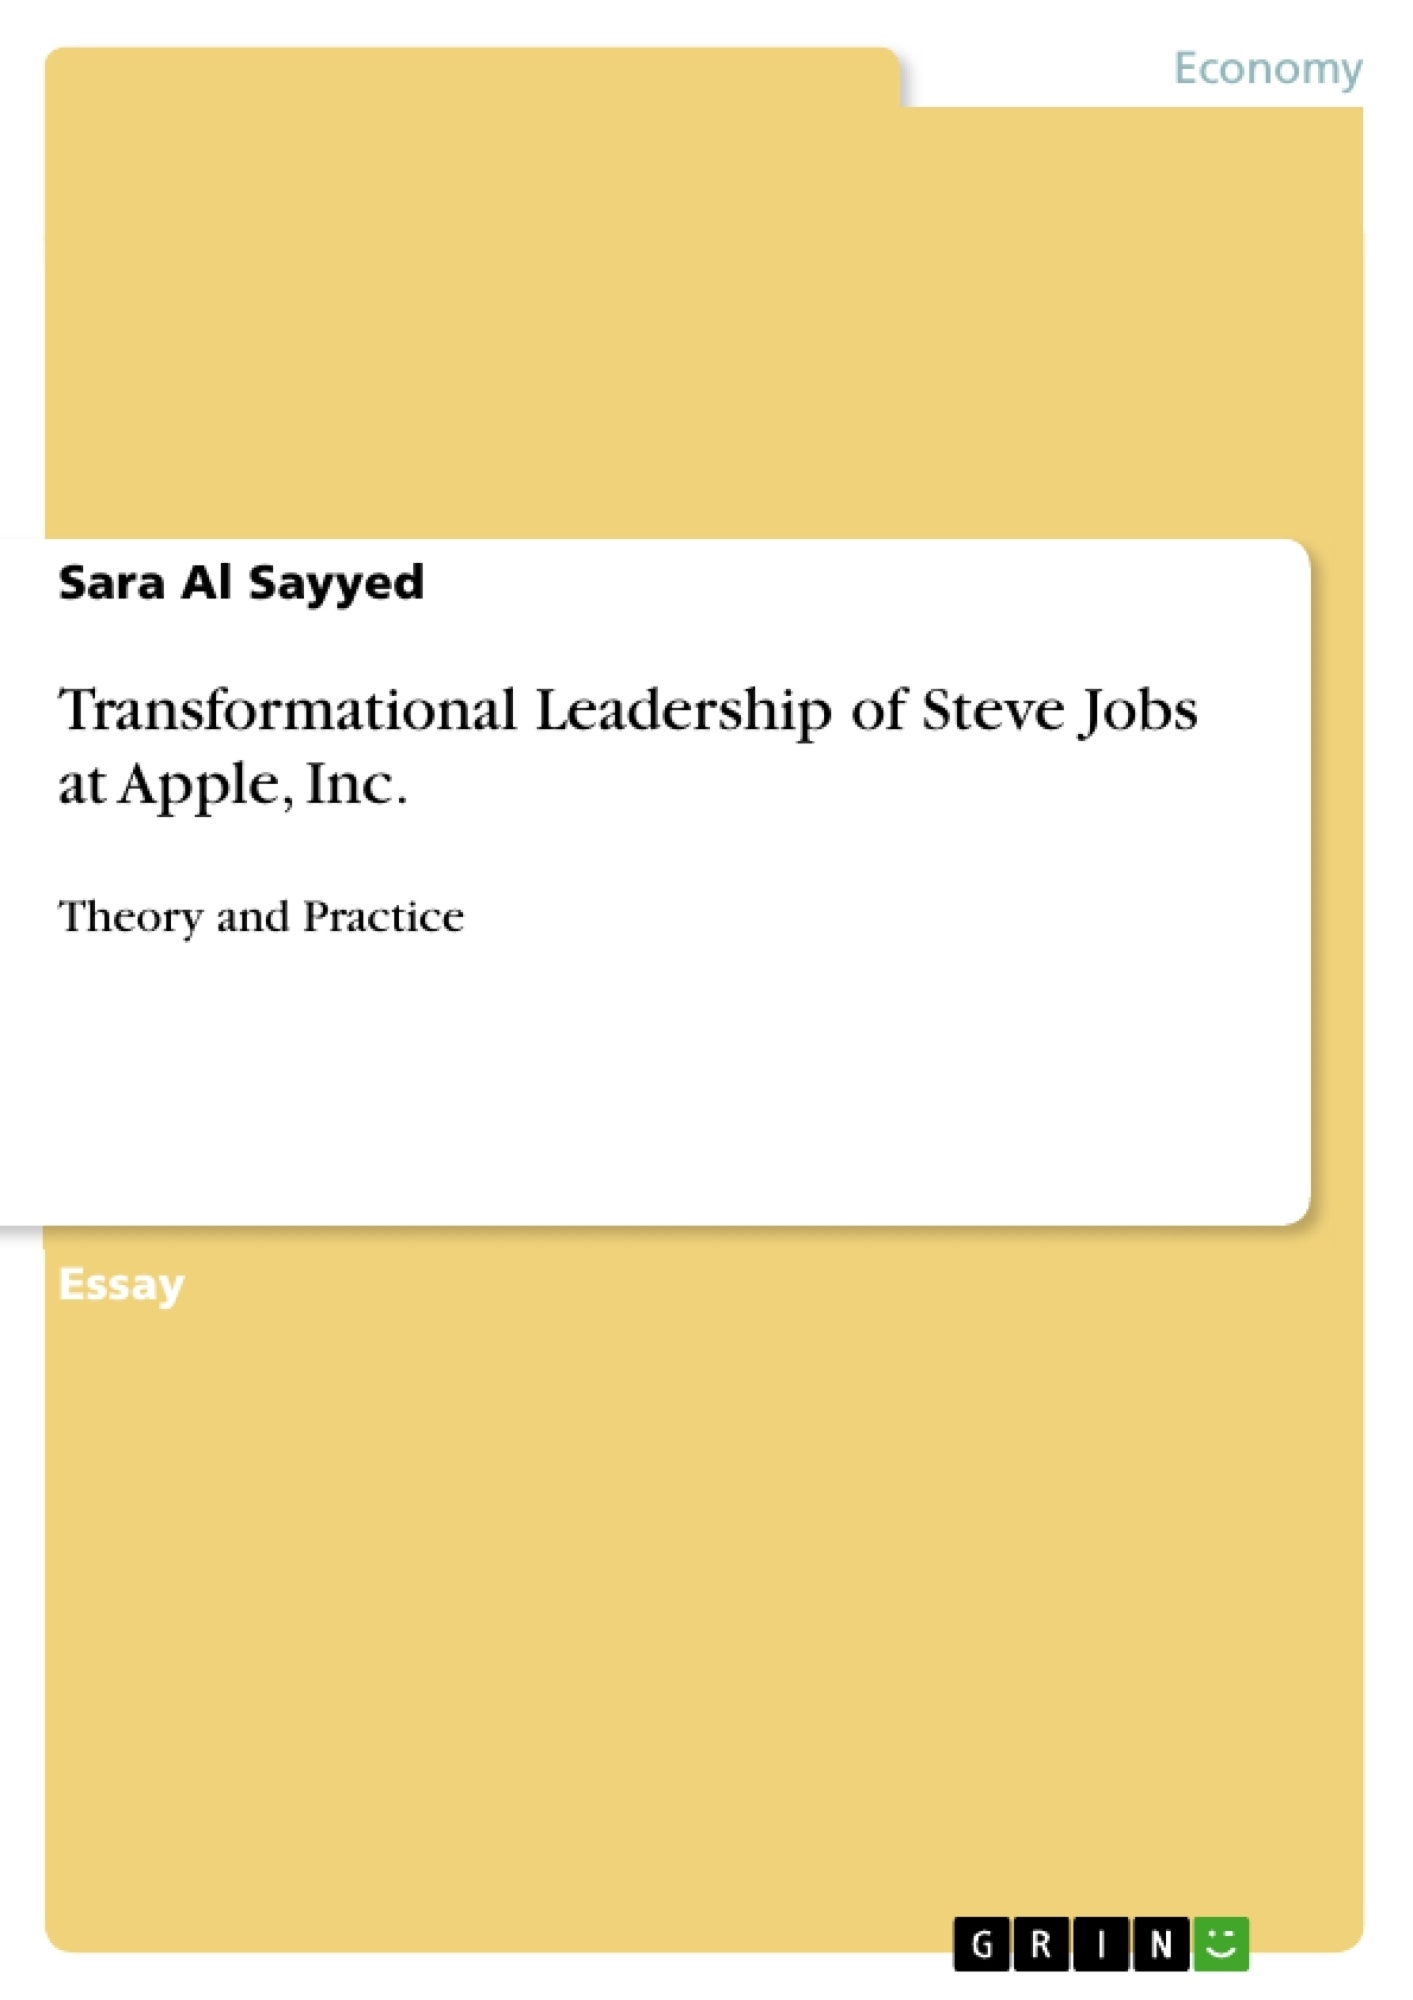 leadership essay on steve jobs An informative essay example on steve jobs and one of the most successful american companies america's most successful companies: steve jobs and apple inc under the leadership of jobs.